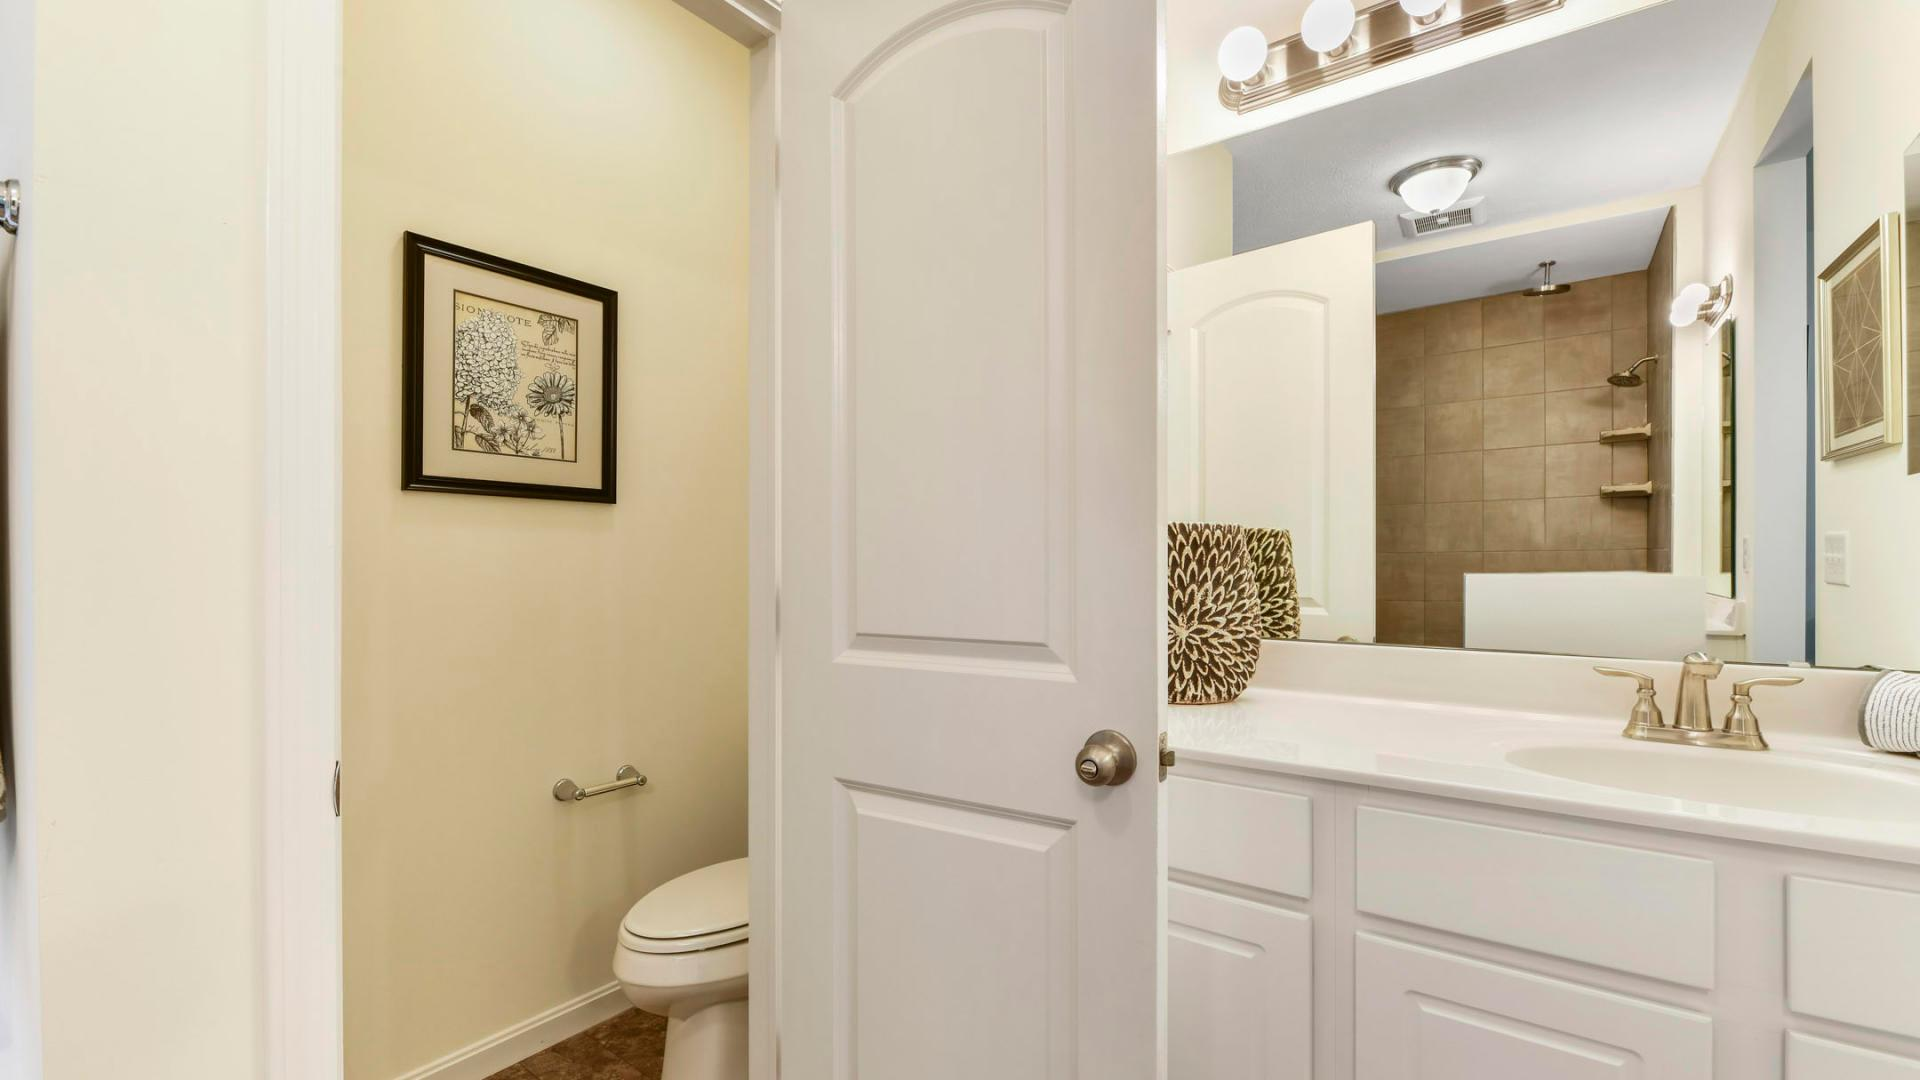 Bathroom featured in the Wilmington By Maronda Homes in Columbus, OH